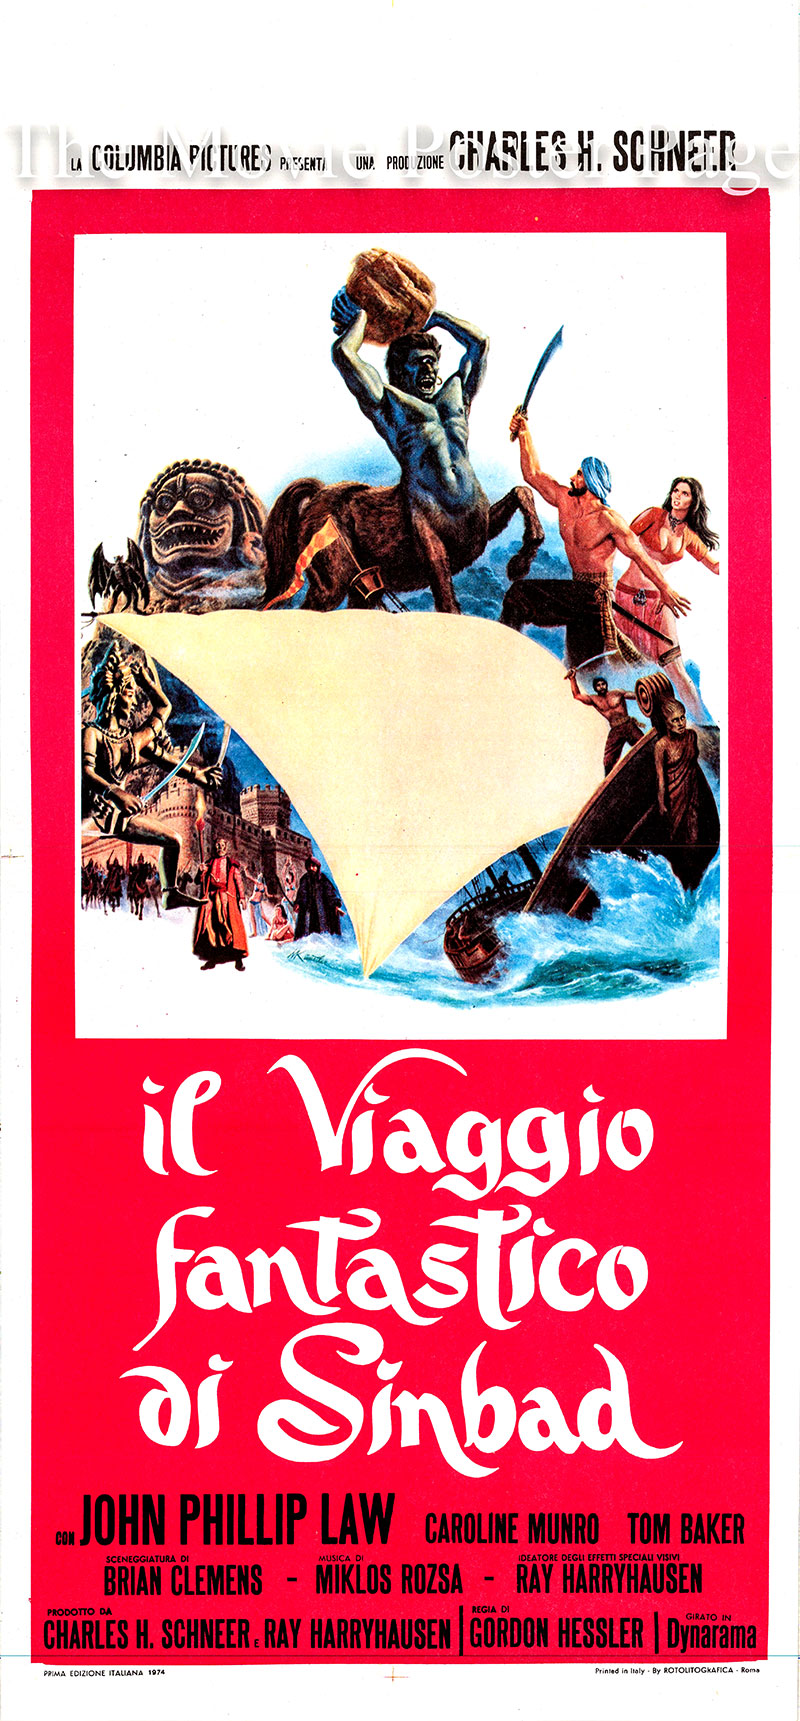 Pictured is an Italian locandina poster for the 1973 Gordon Hessler film <i>The Golden Voyage of Sinbad</i> starring John Phillip Law as Sinbad.